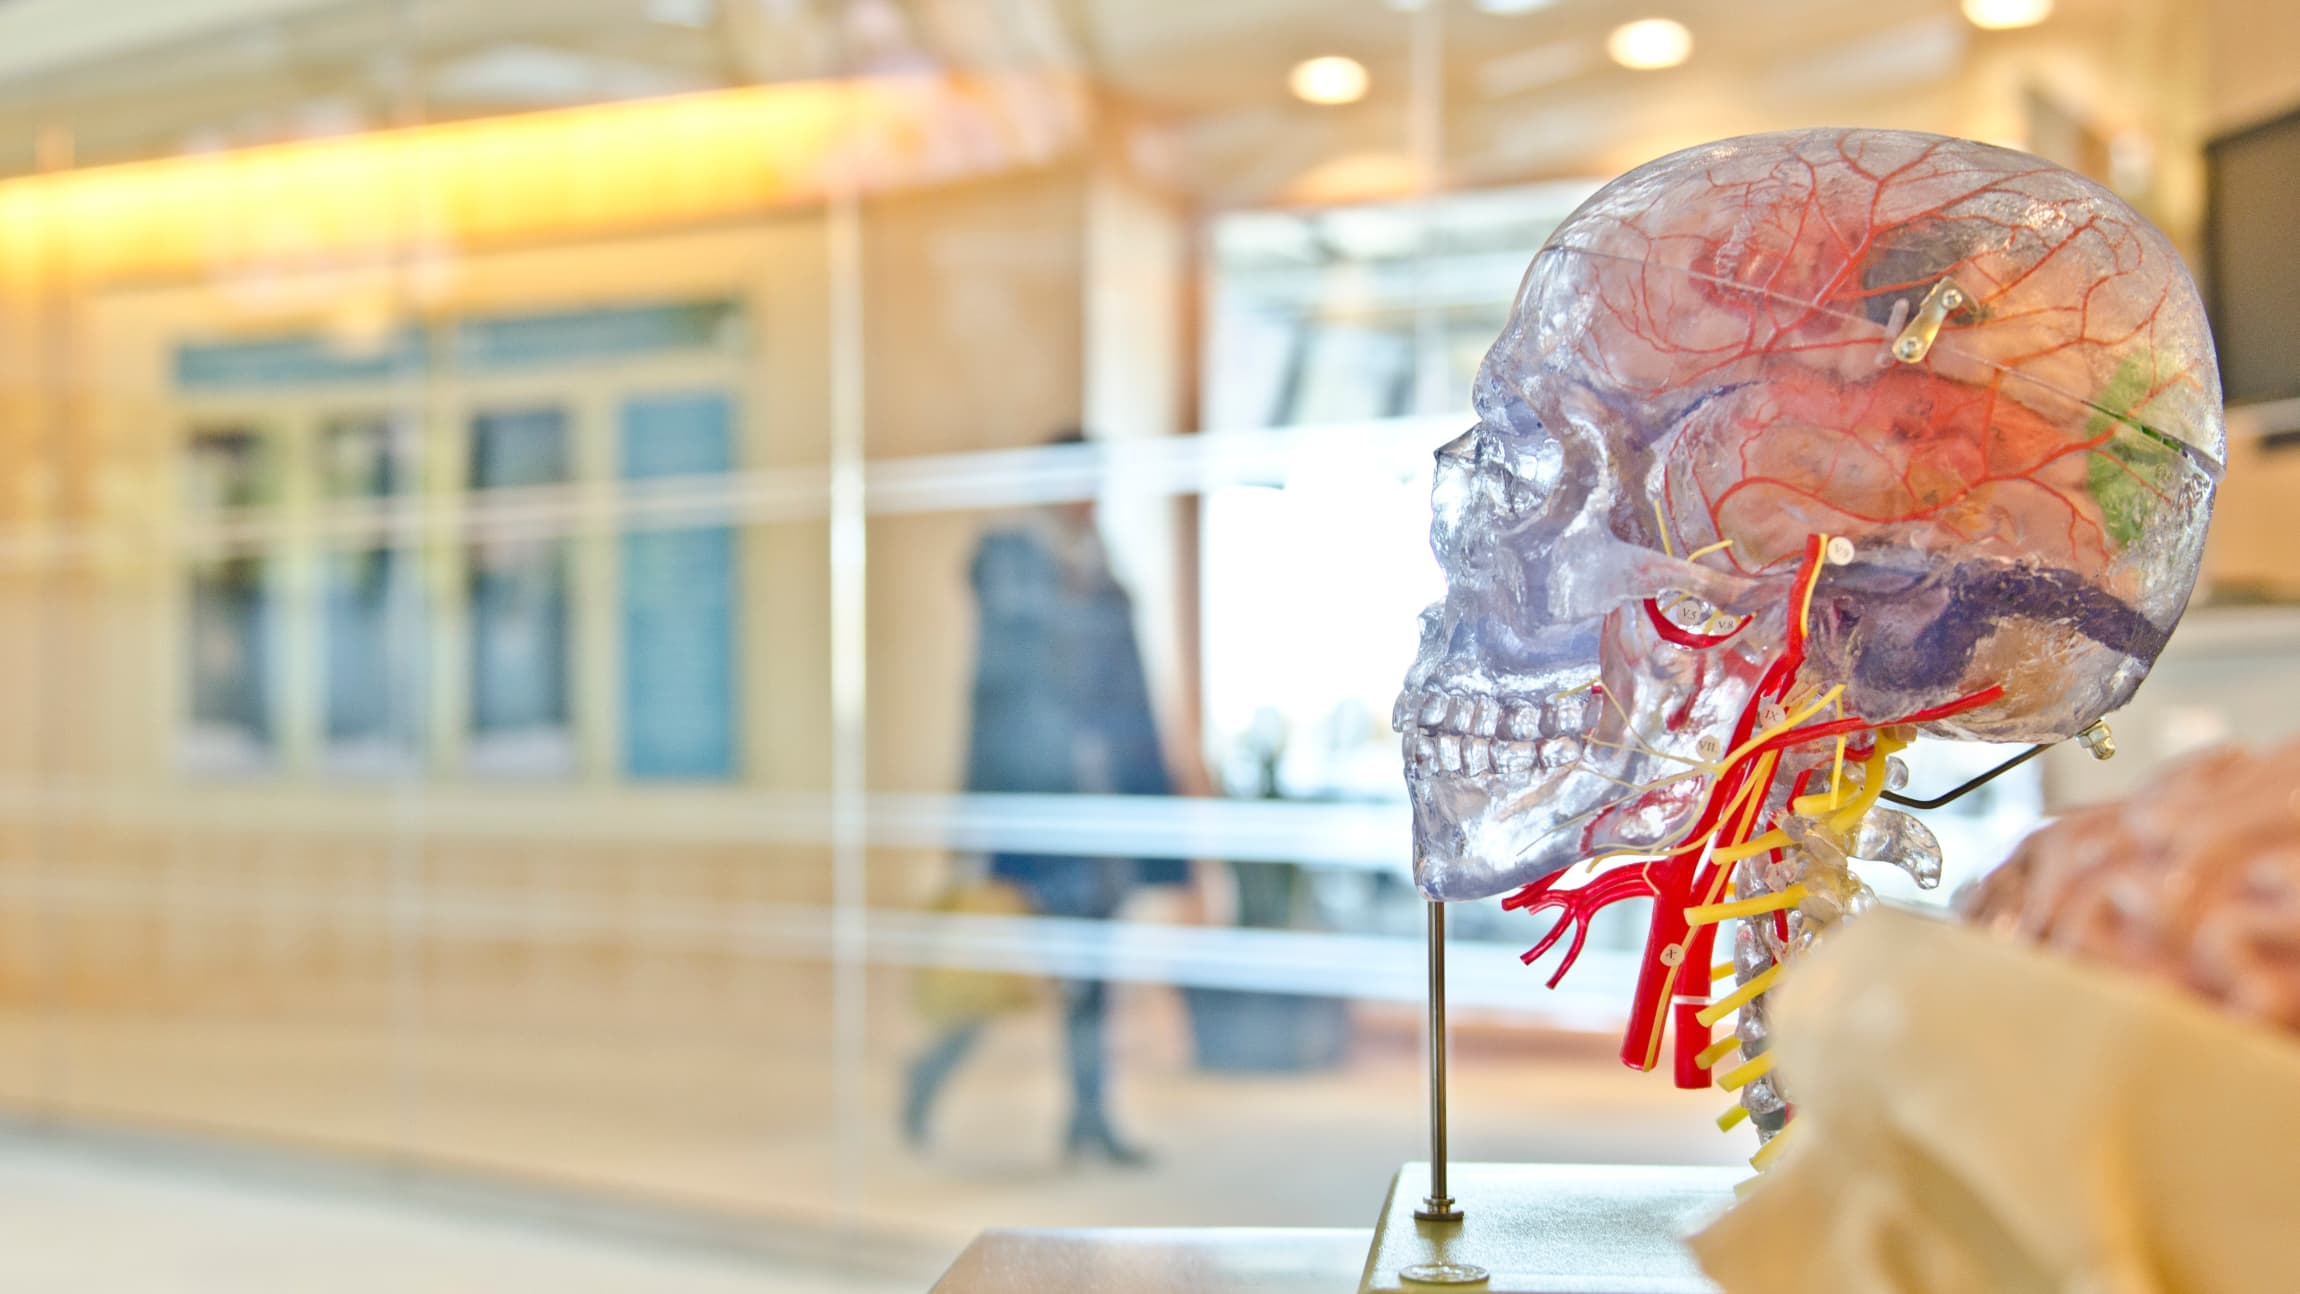 Clear model of a human skull with visible blood vessels.